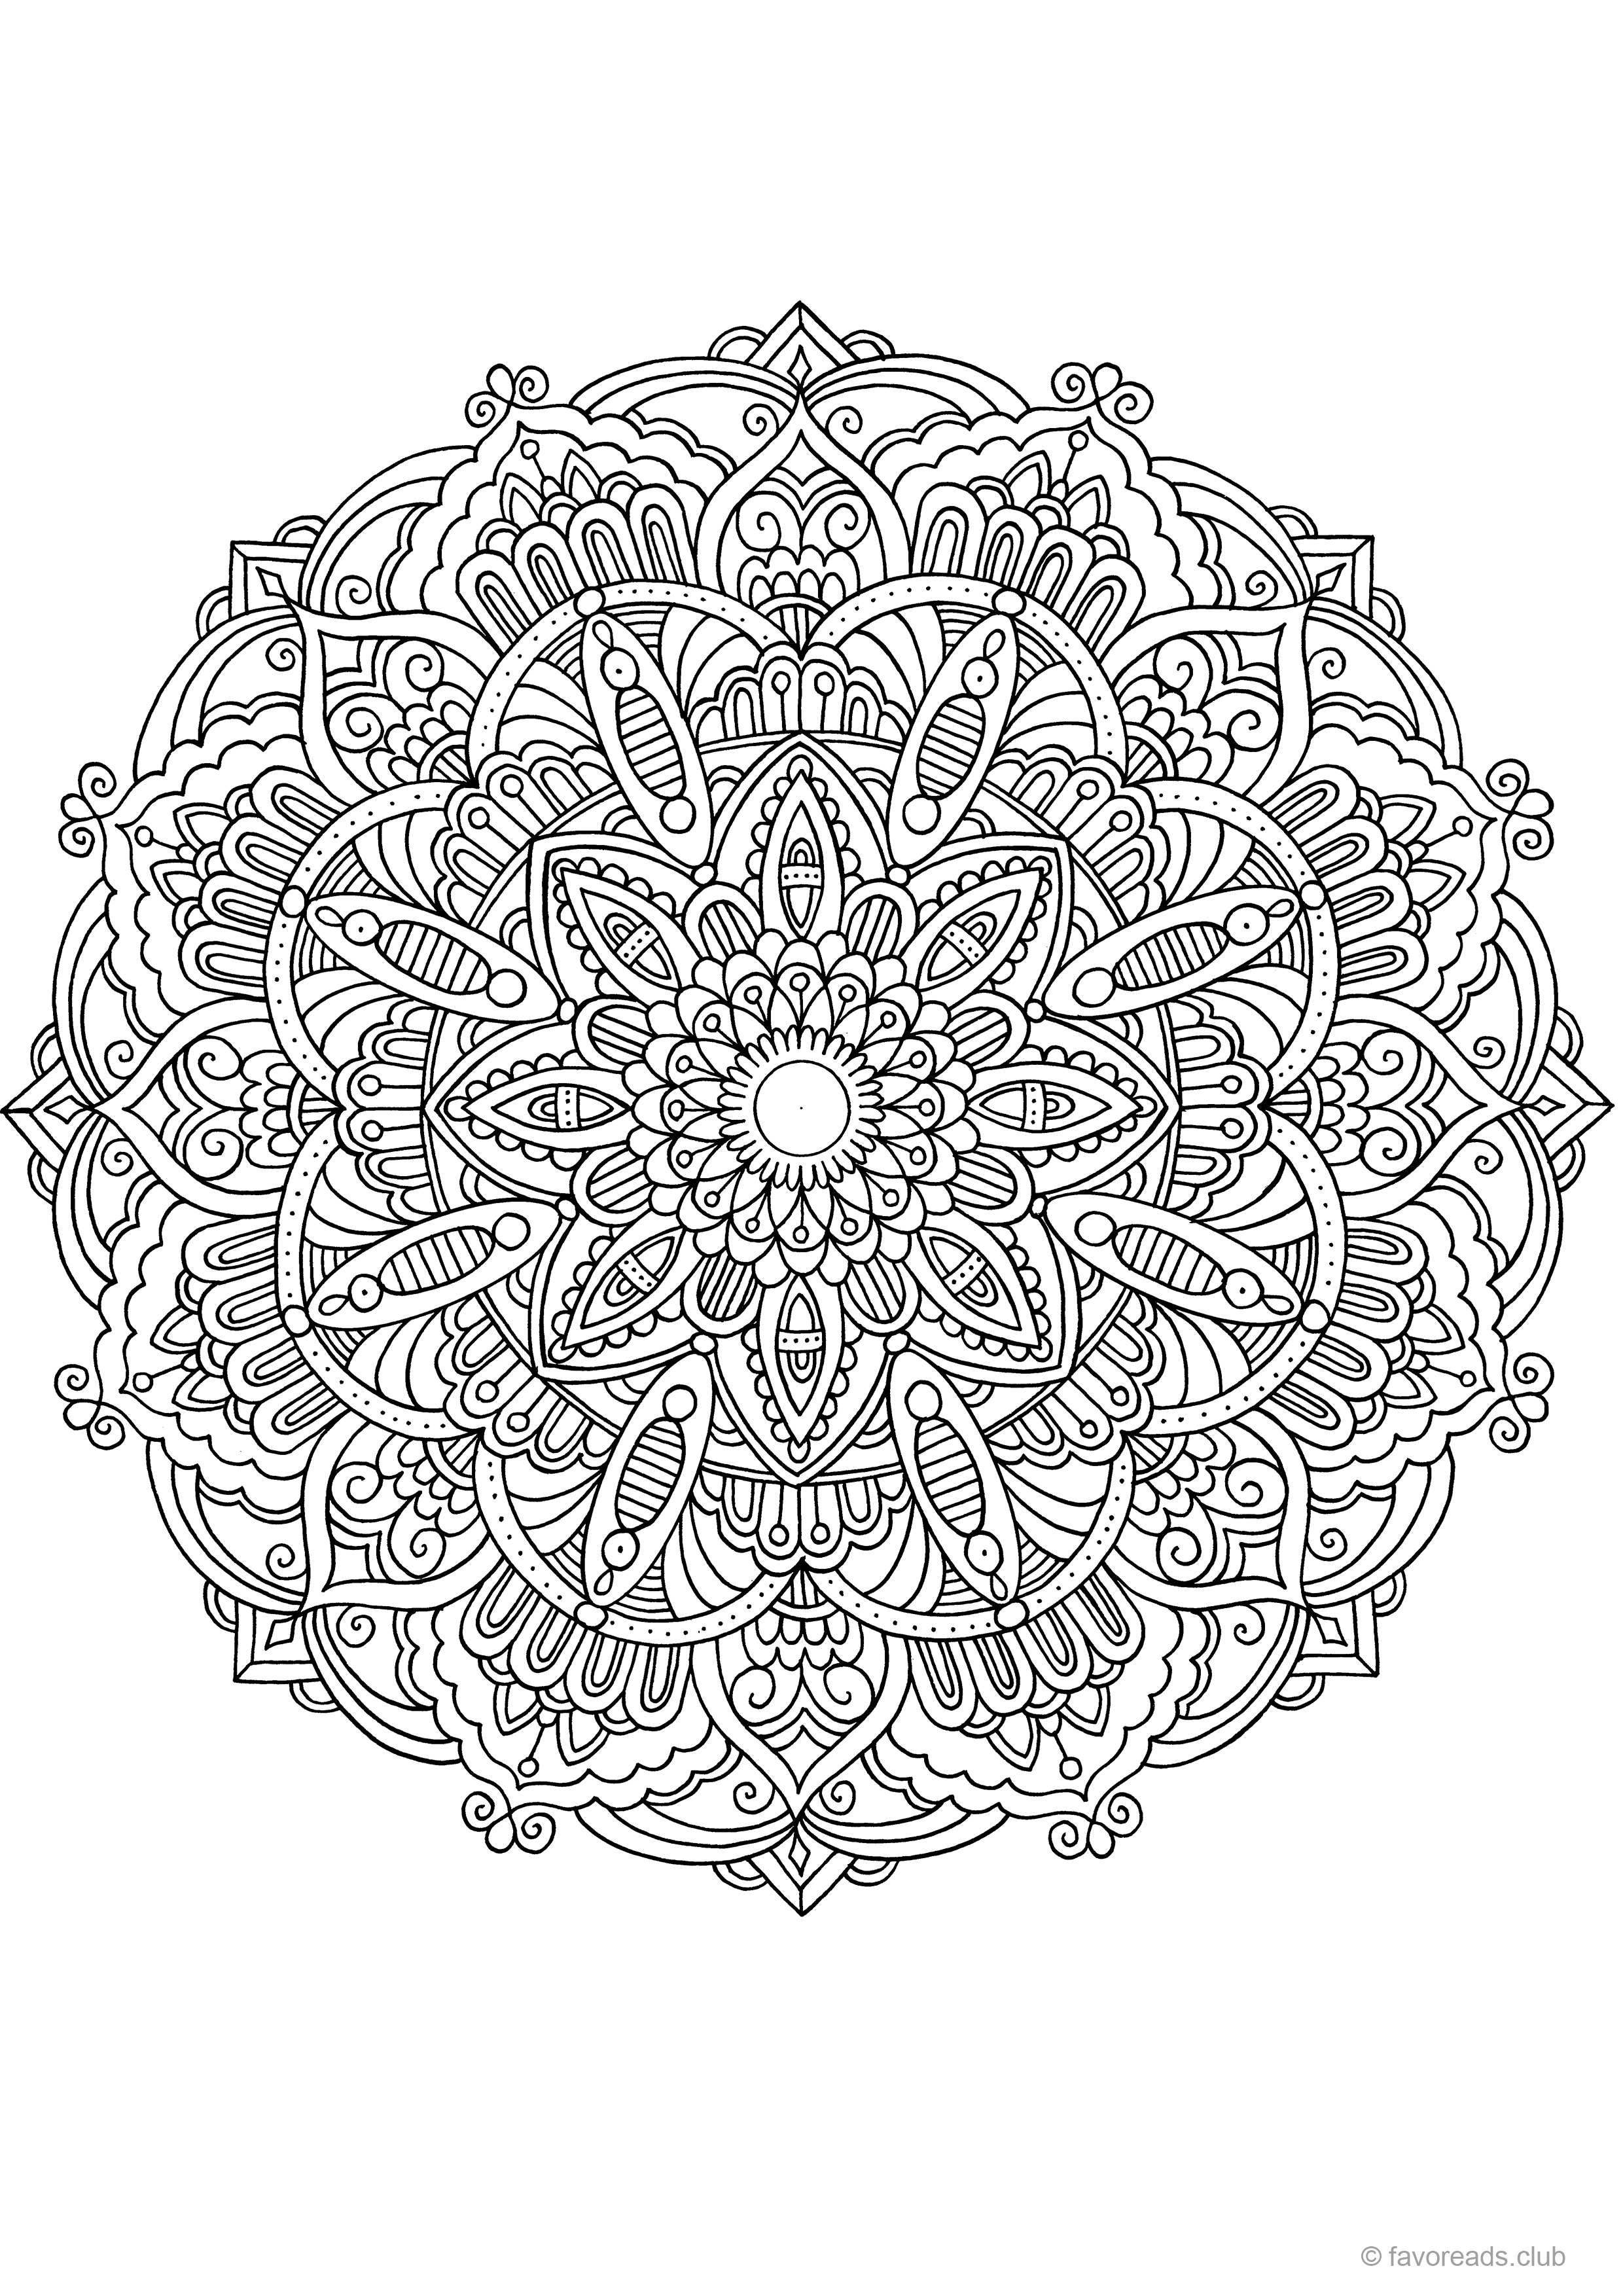 color your own mandala how to draw mandala designs and create your own free mandala own your color